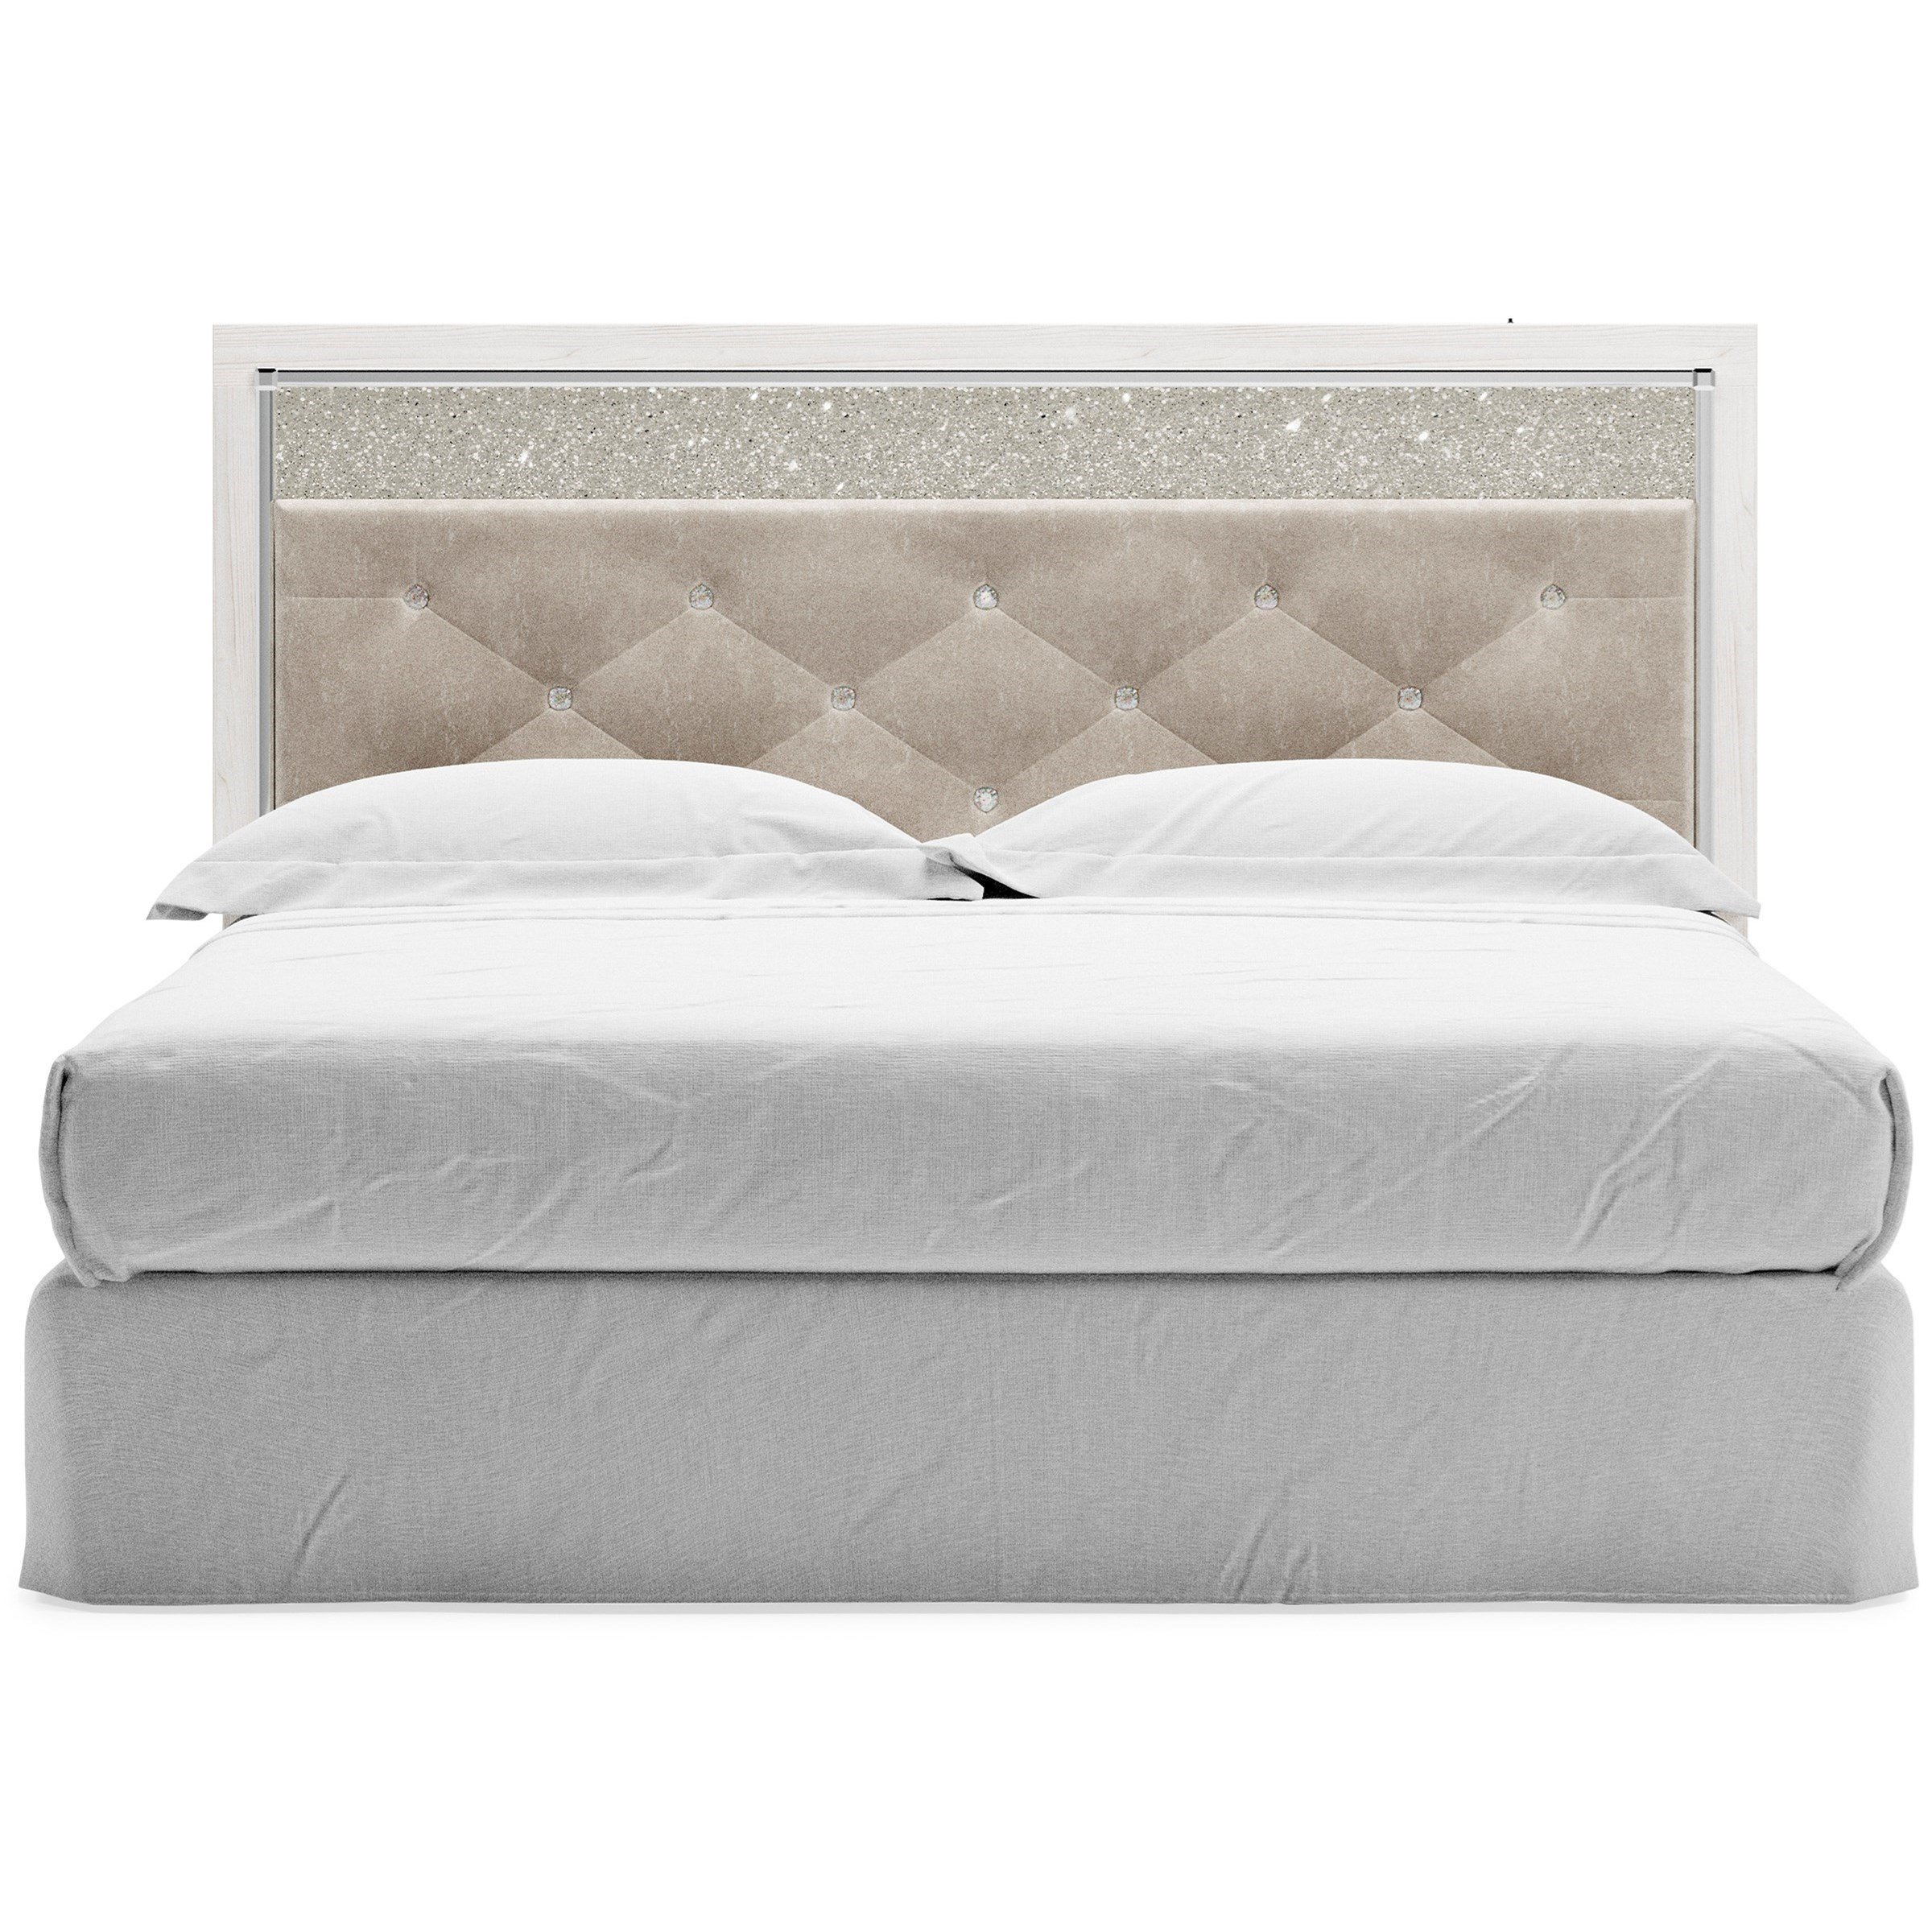 Altyra King/Cal King Upholstered Panel Headboard by Ashley (Signature Design) at Johnny Janosik